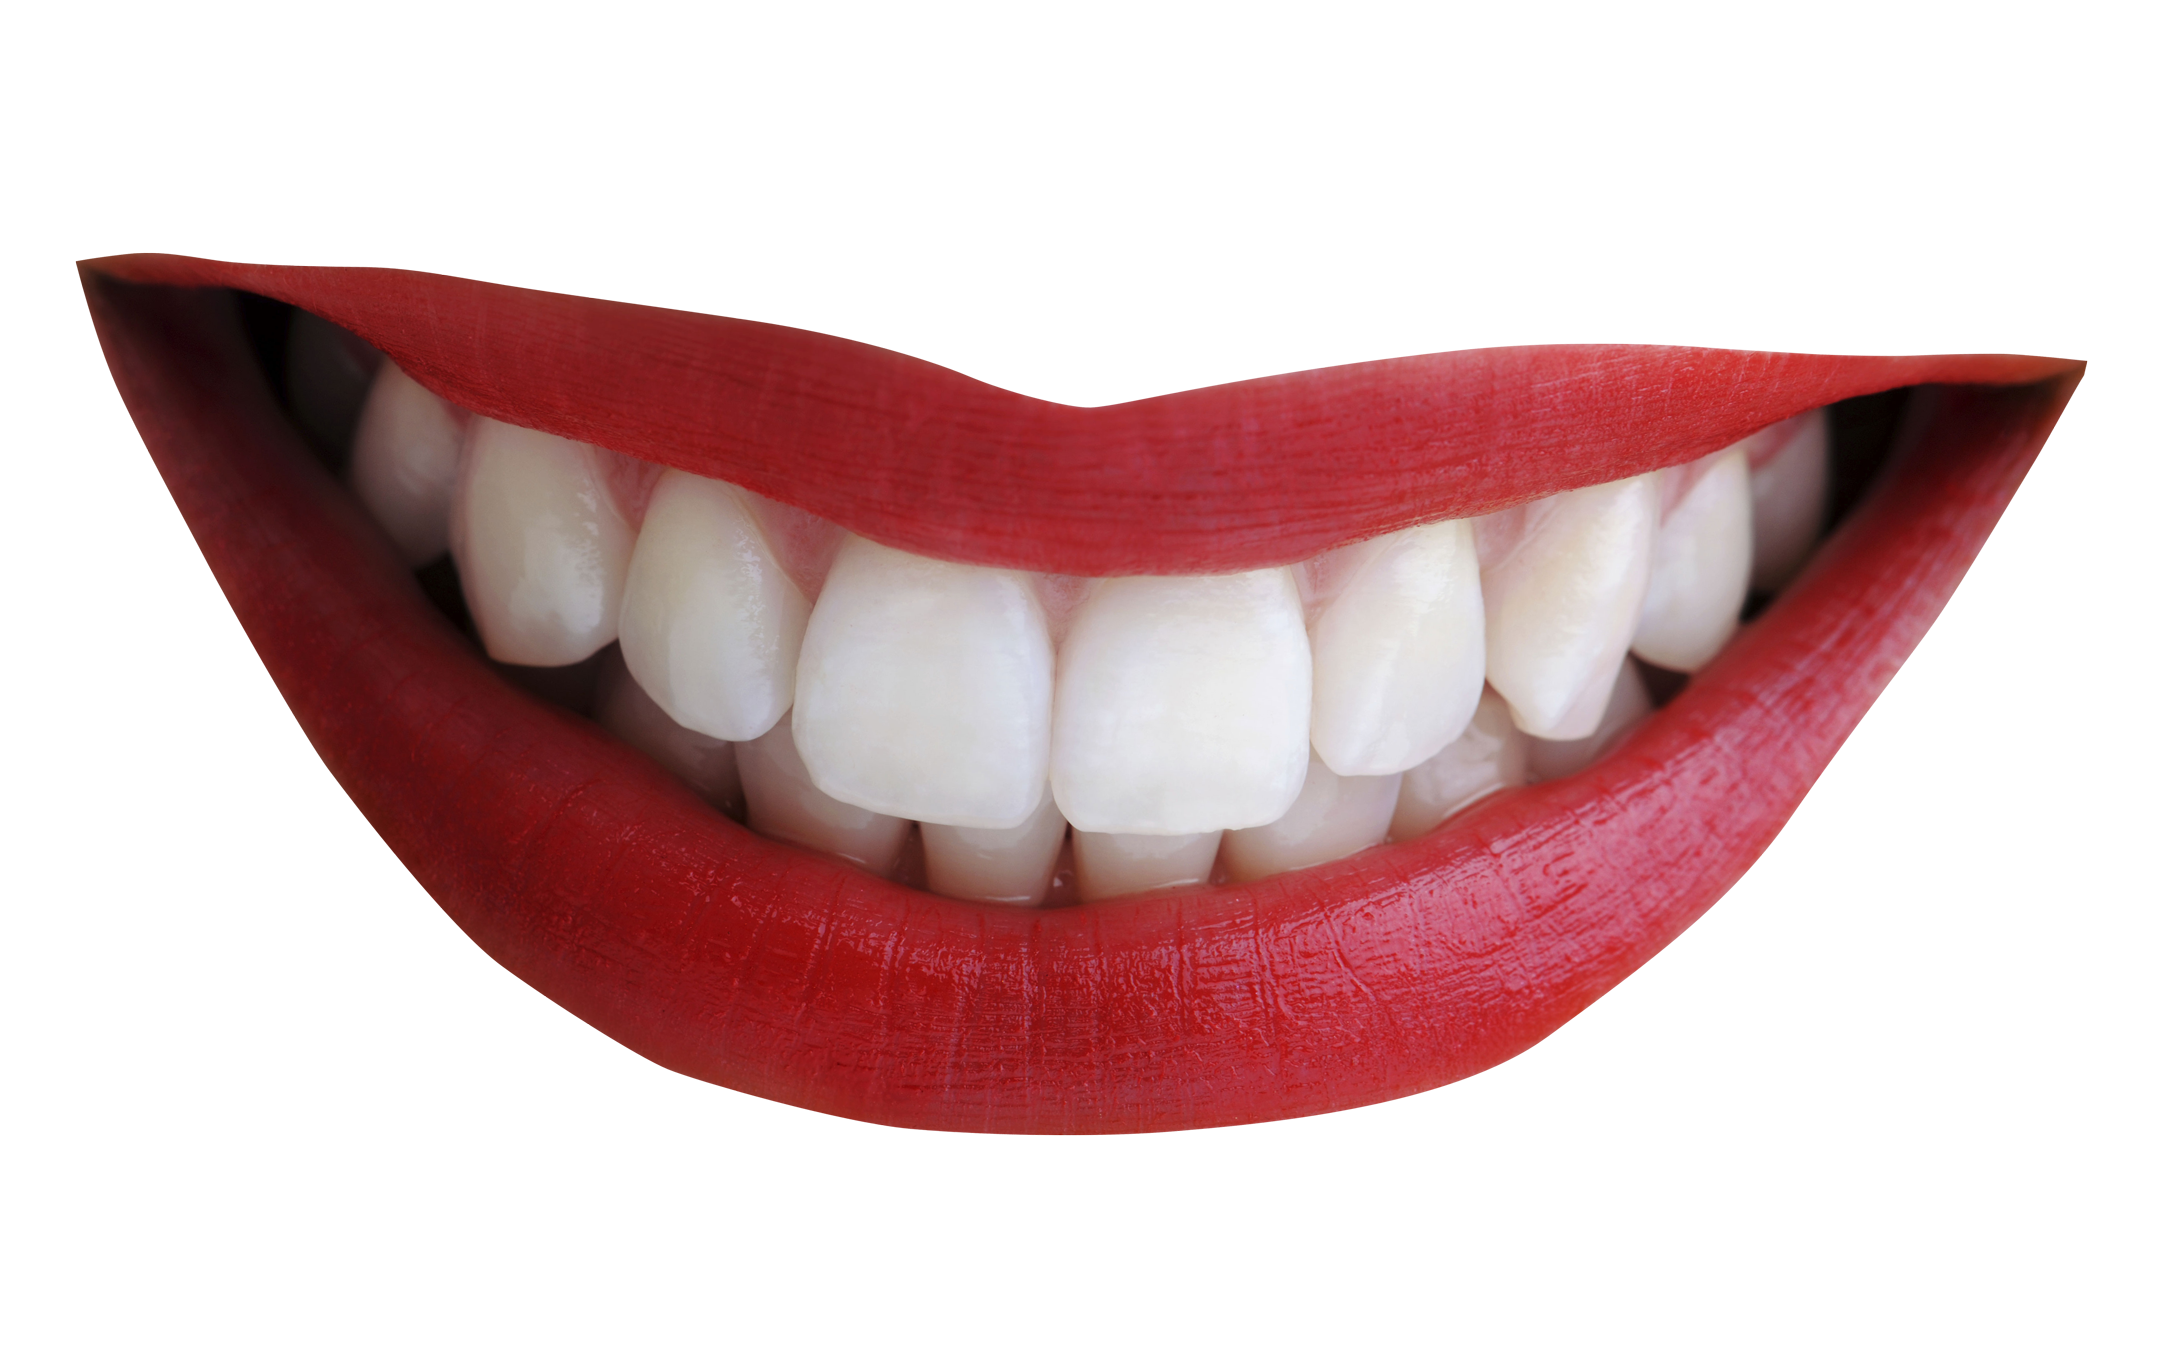 Mouth Smile Png Image Perfect Smile Mouth Smile Teeth